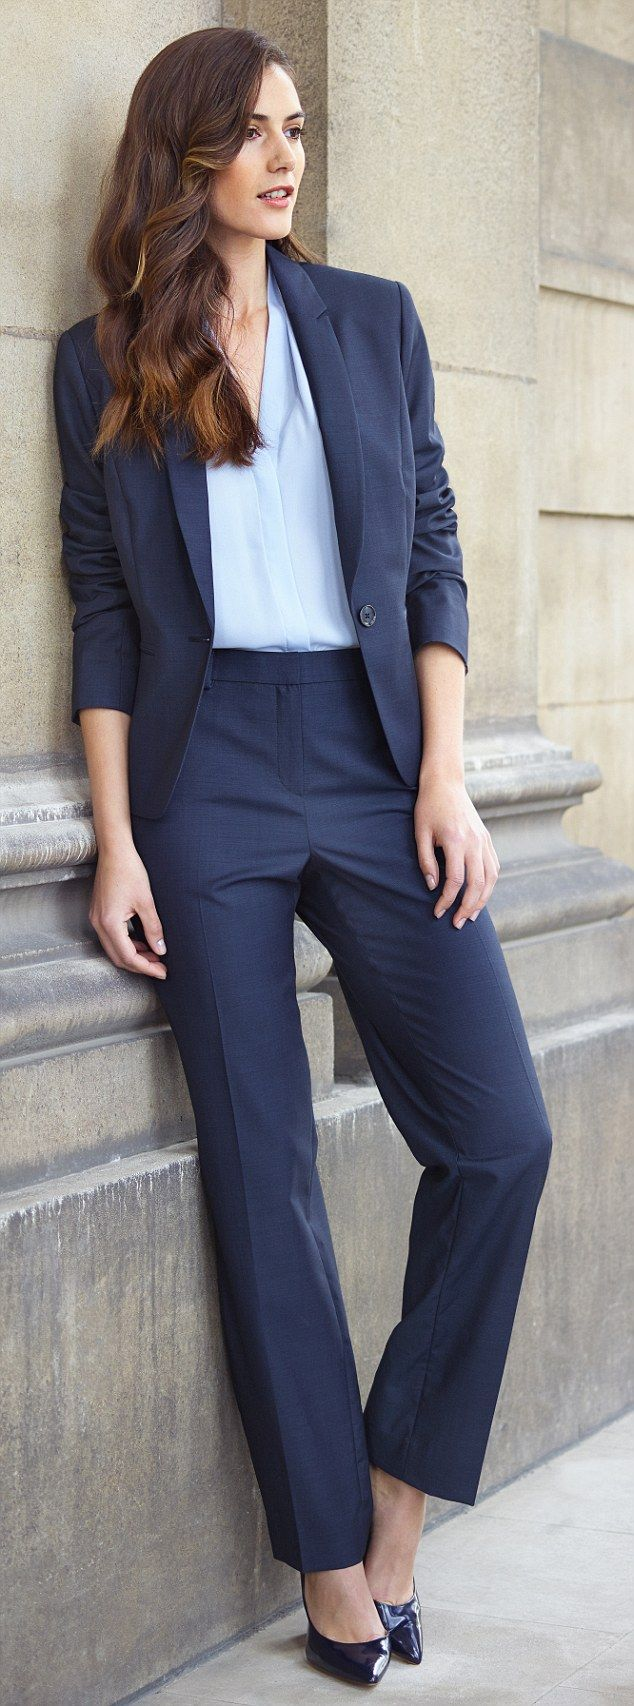 Awesome  Suits For Women On Pinterest  Suits For Women Business Suit Women